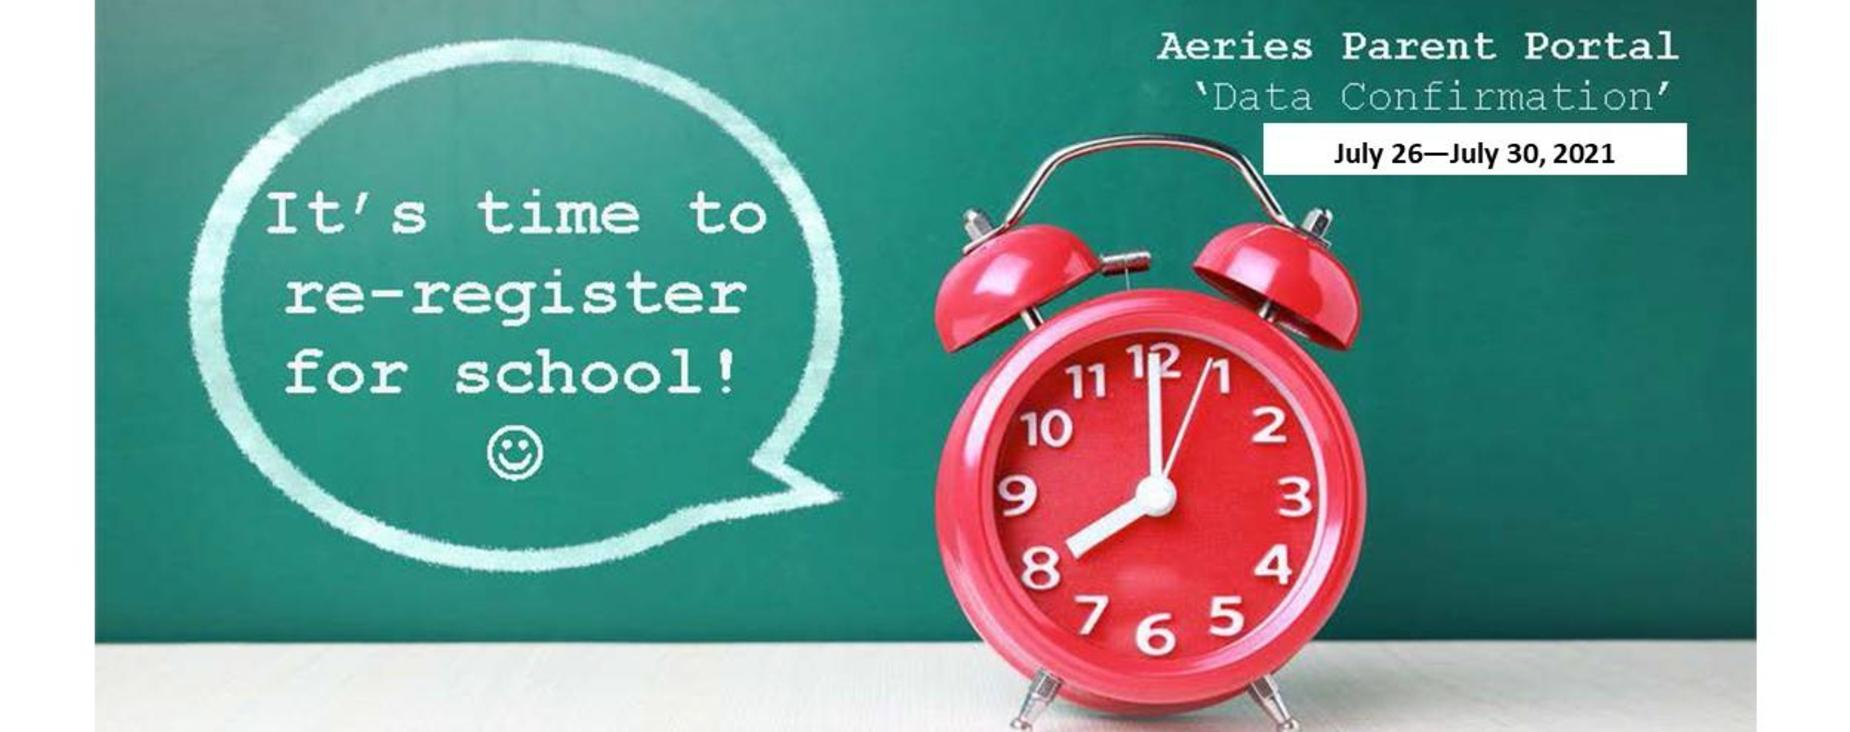 It's time to re-register for school! Aeries Parent Portal 'Data Confirmation' July 26 - July 30, 2021